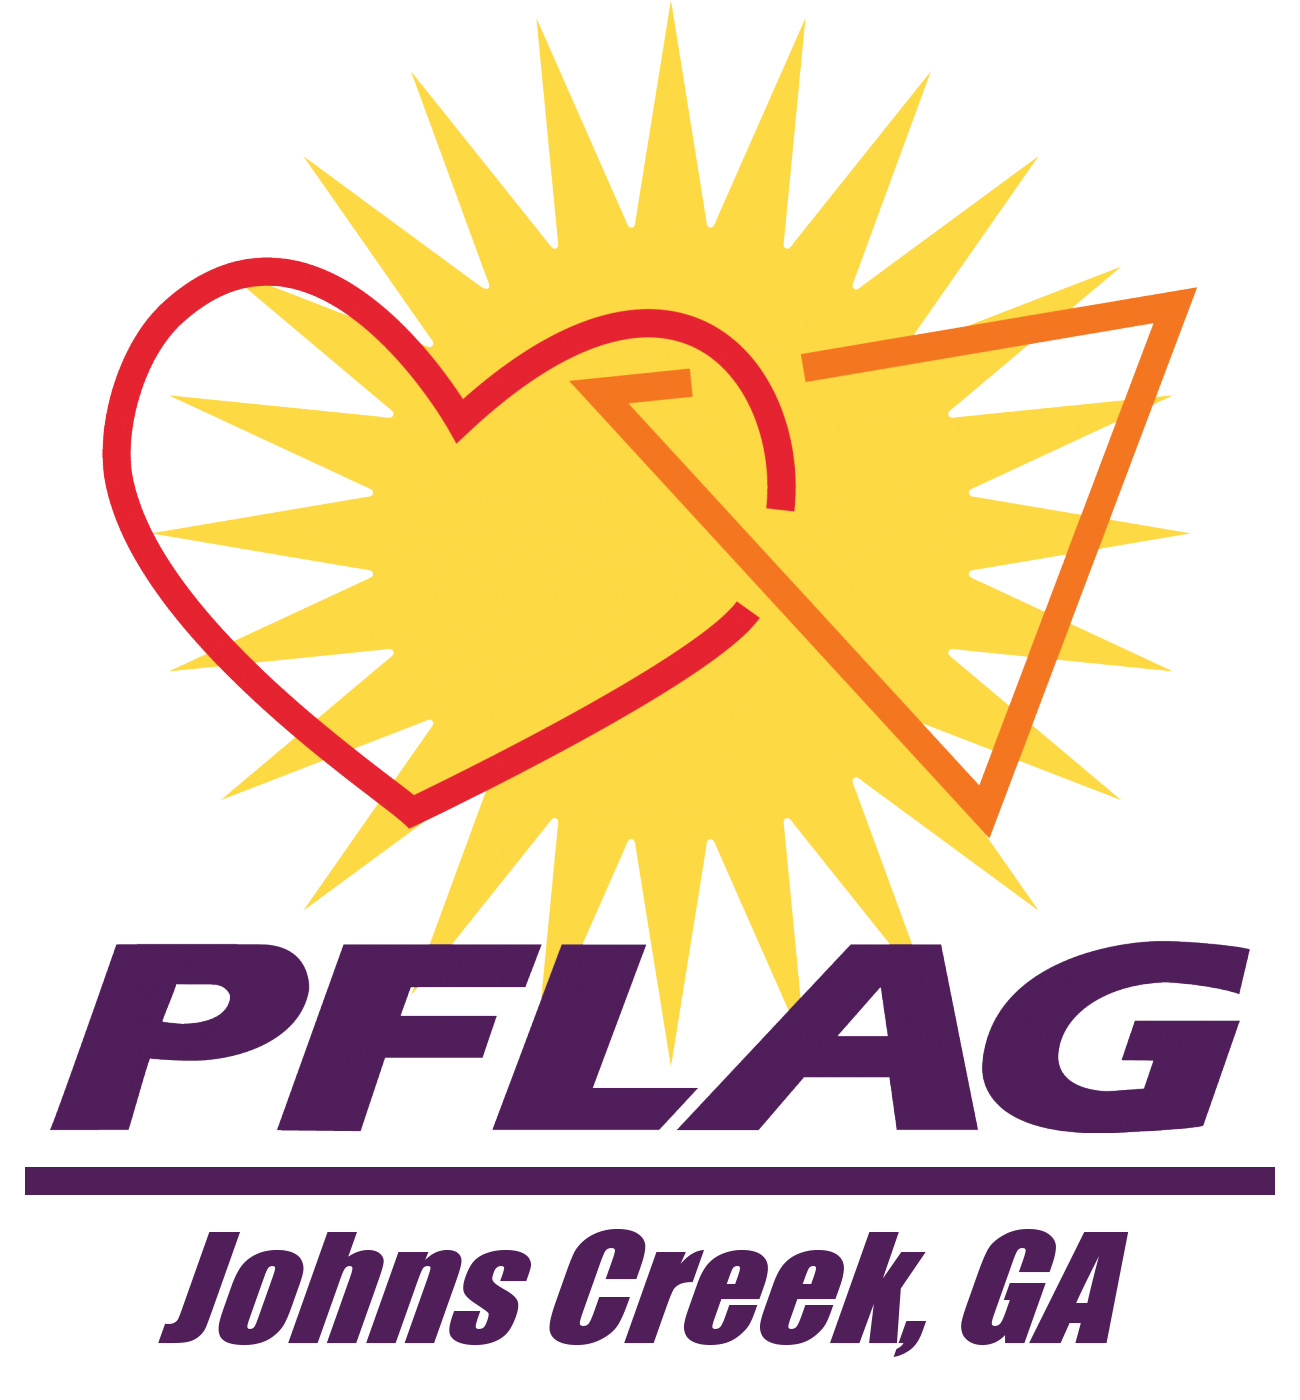 PFLAG - Johns Creek, GA - No Background